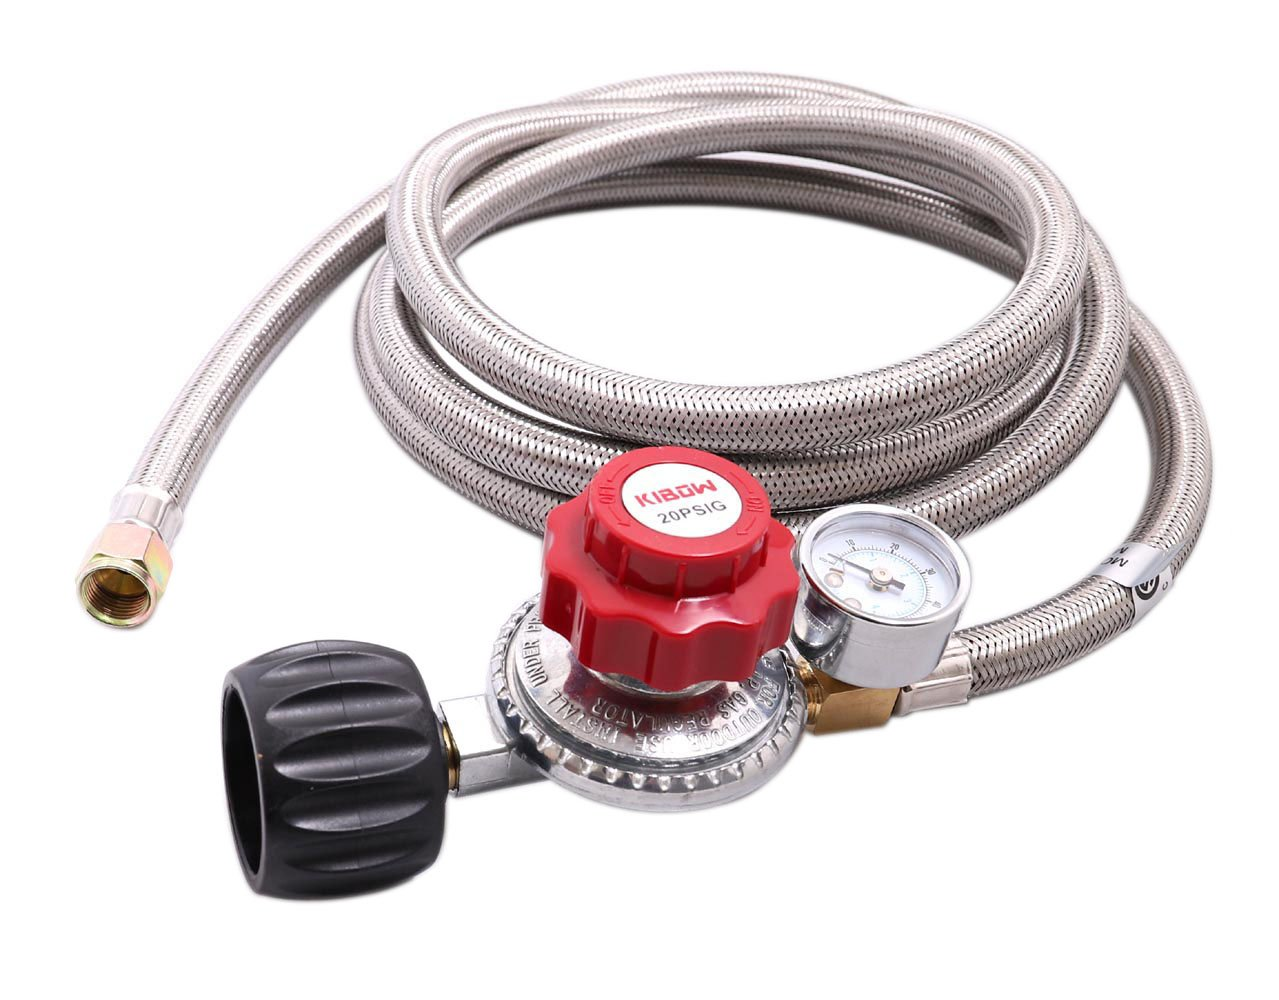 KIBOW 0~20PSI High Pressure Adjustable Propane Regulator w/8FT SS Braided Hose-Type1 (QCC1) and 3/8 Female Flare Swivel Fitting - with Gauge